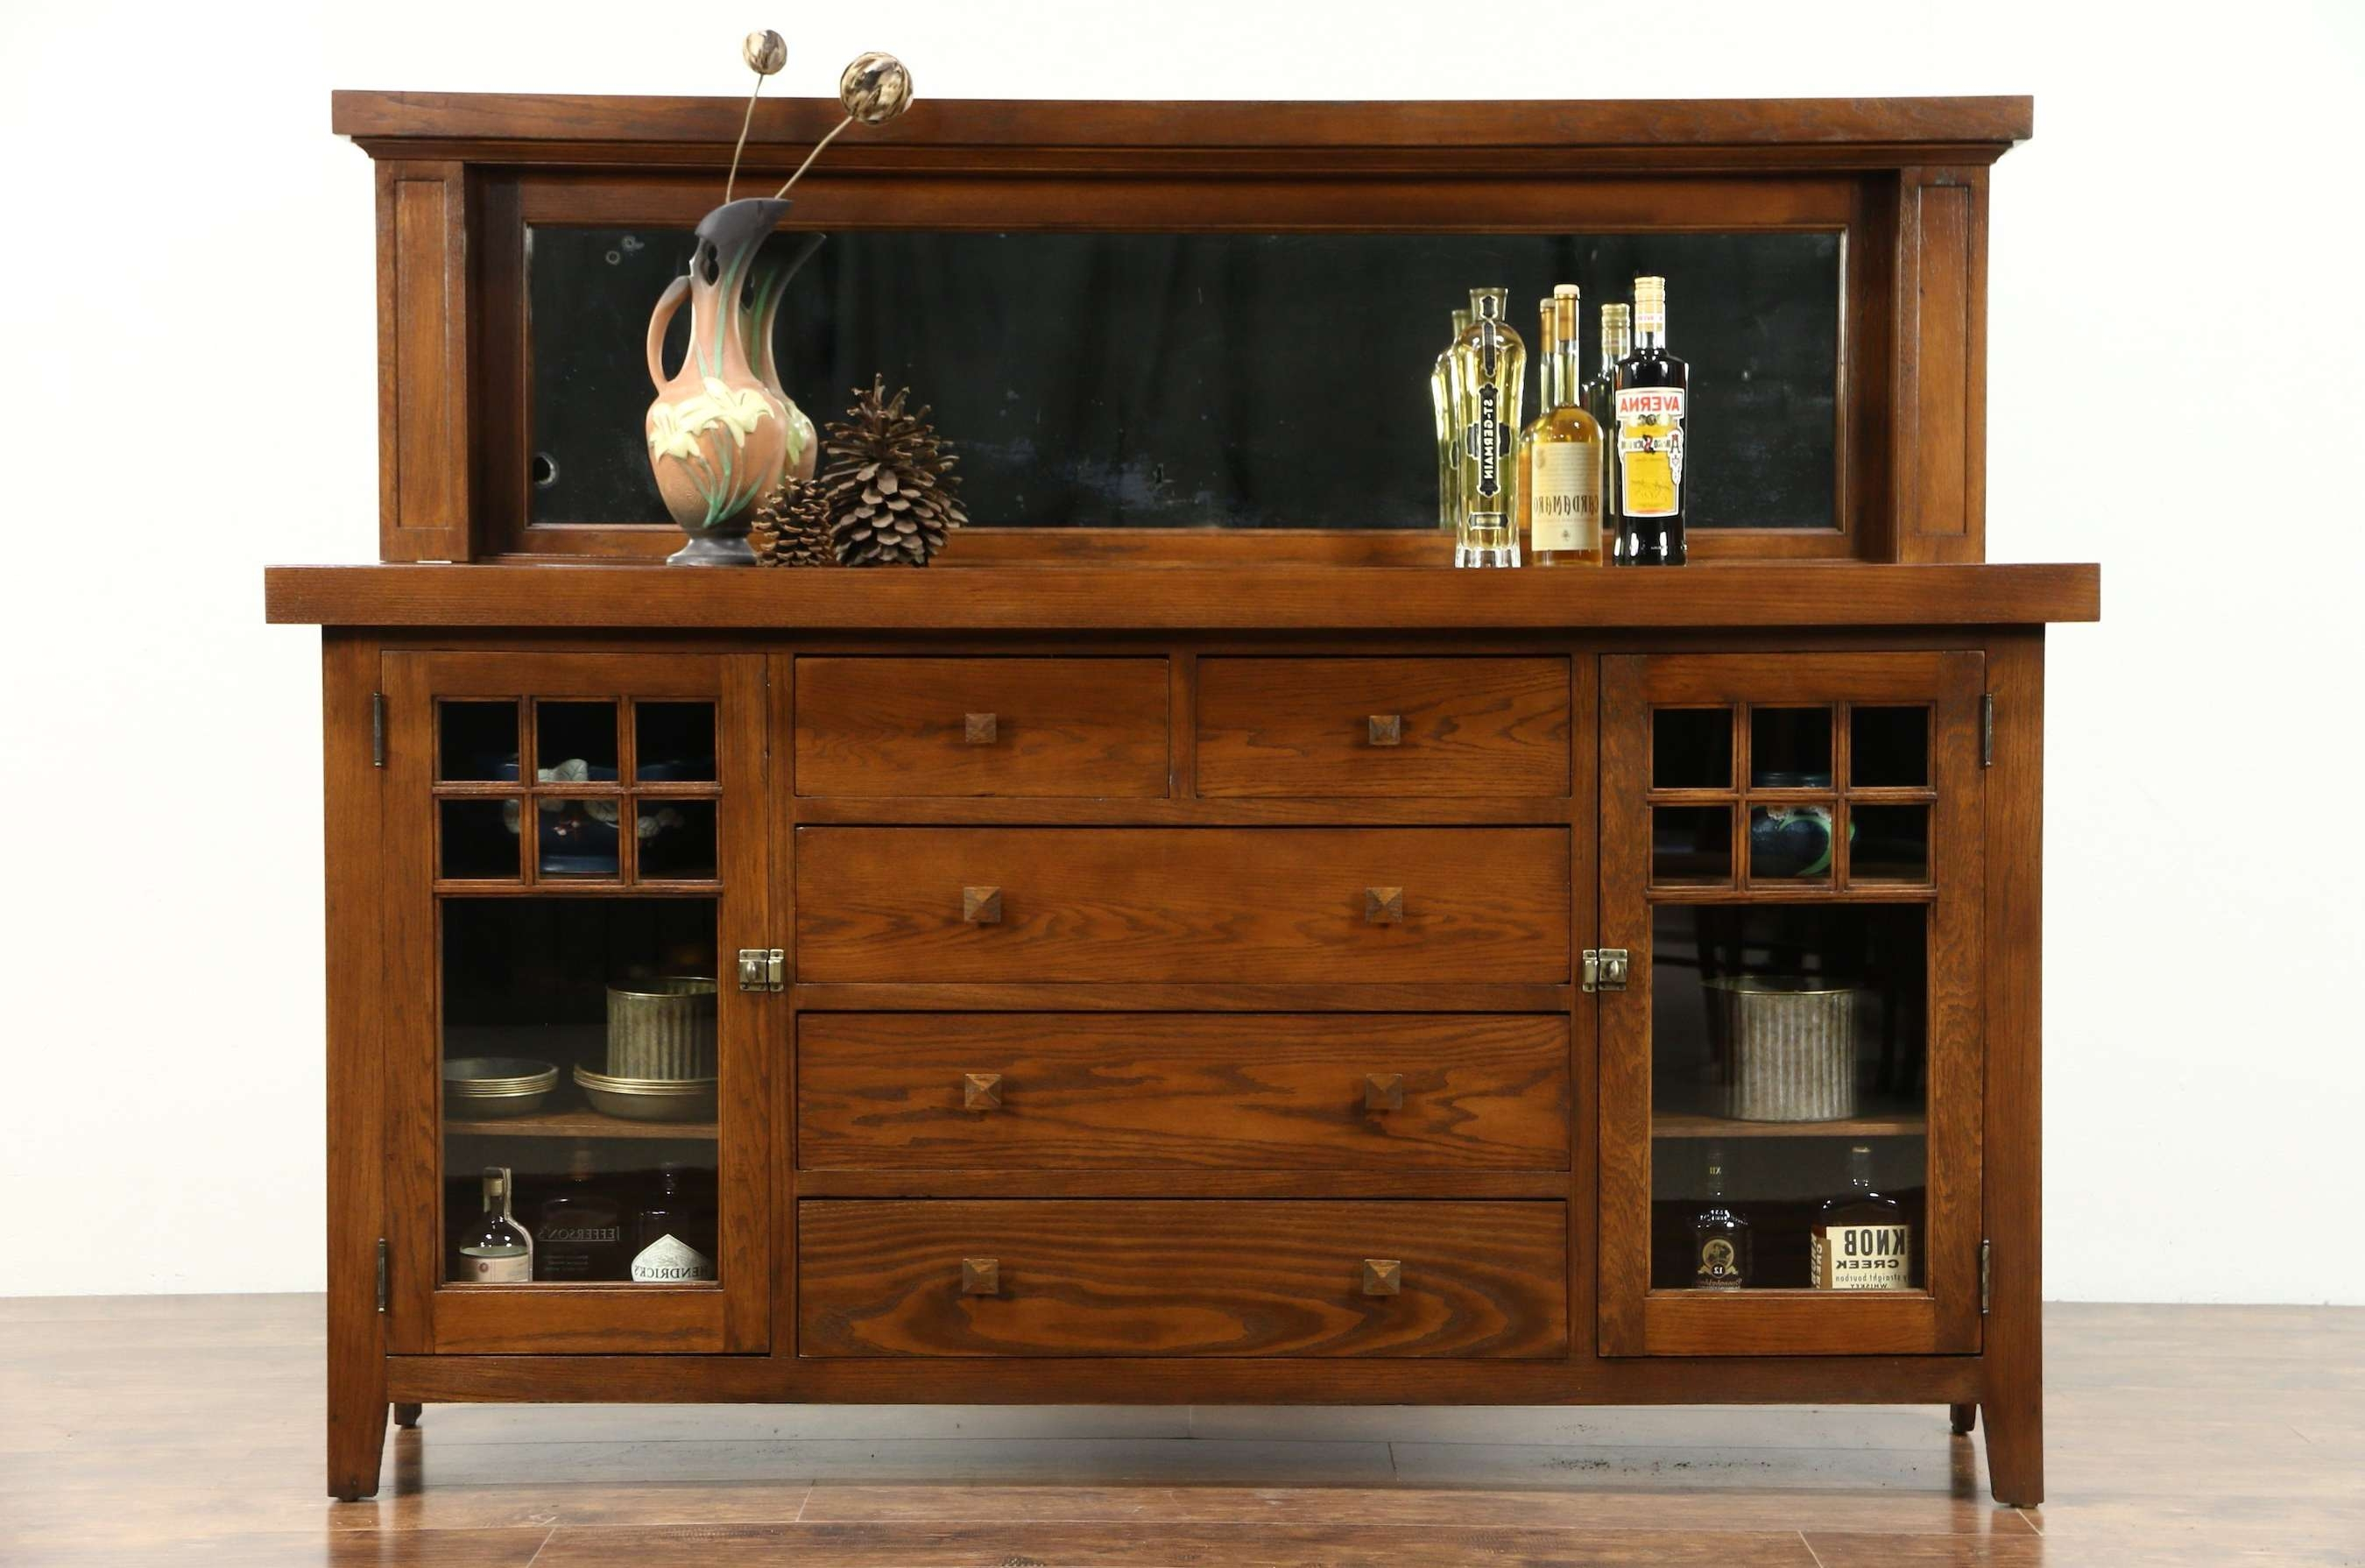 Sold – Arts & Crafts Mission Oak 1900 Antique Craftsman Sideboard Within Mission Sideboards (View 11 of 20)